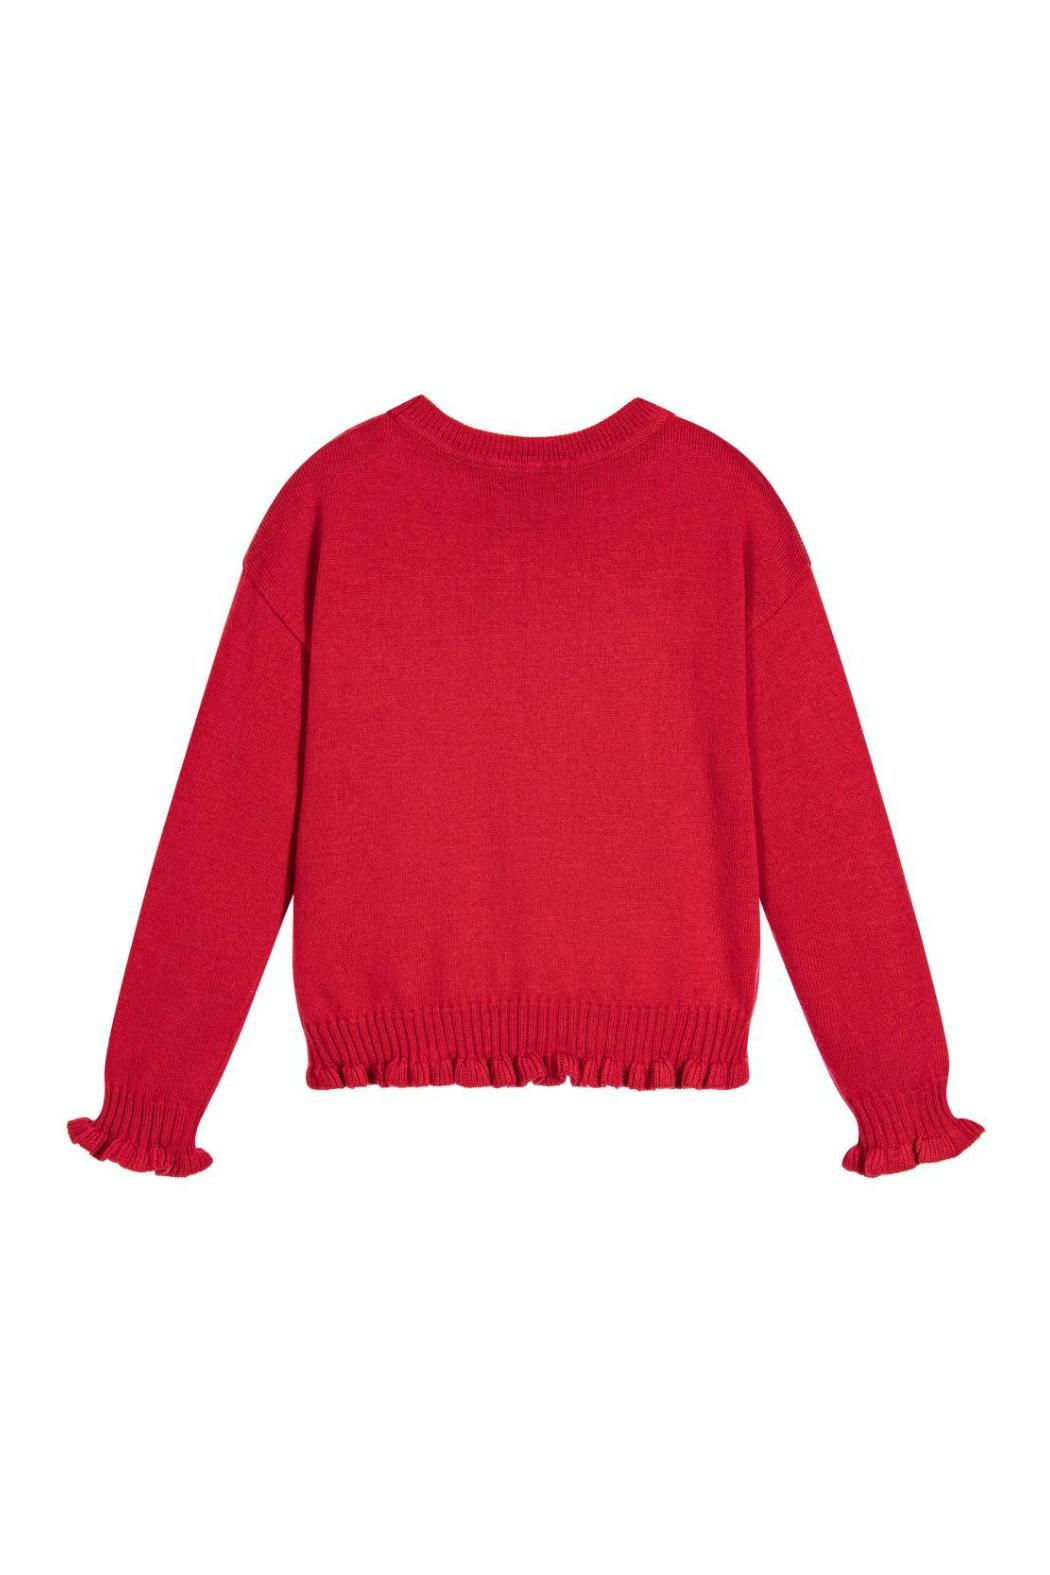 Mayoral Red Knitted Sweater - Front Full Image